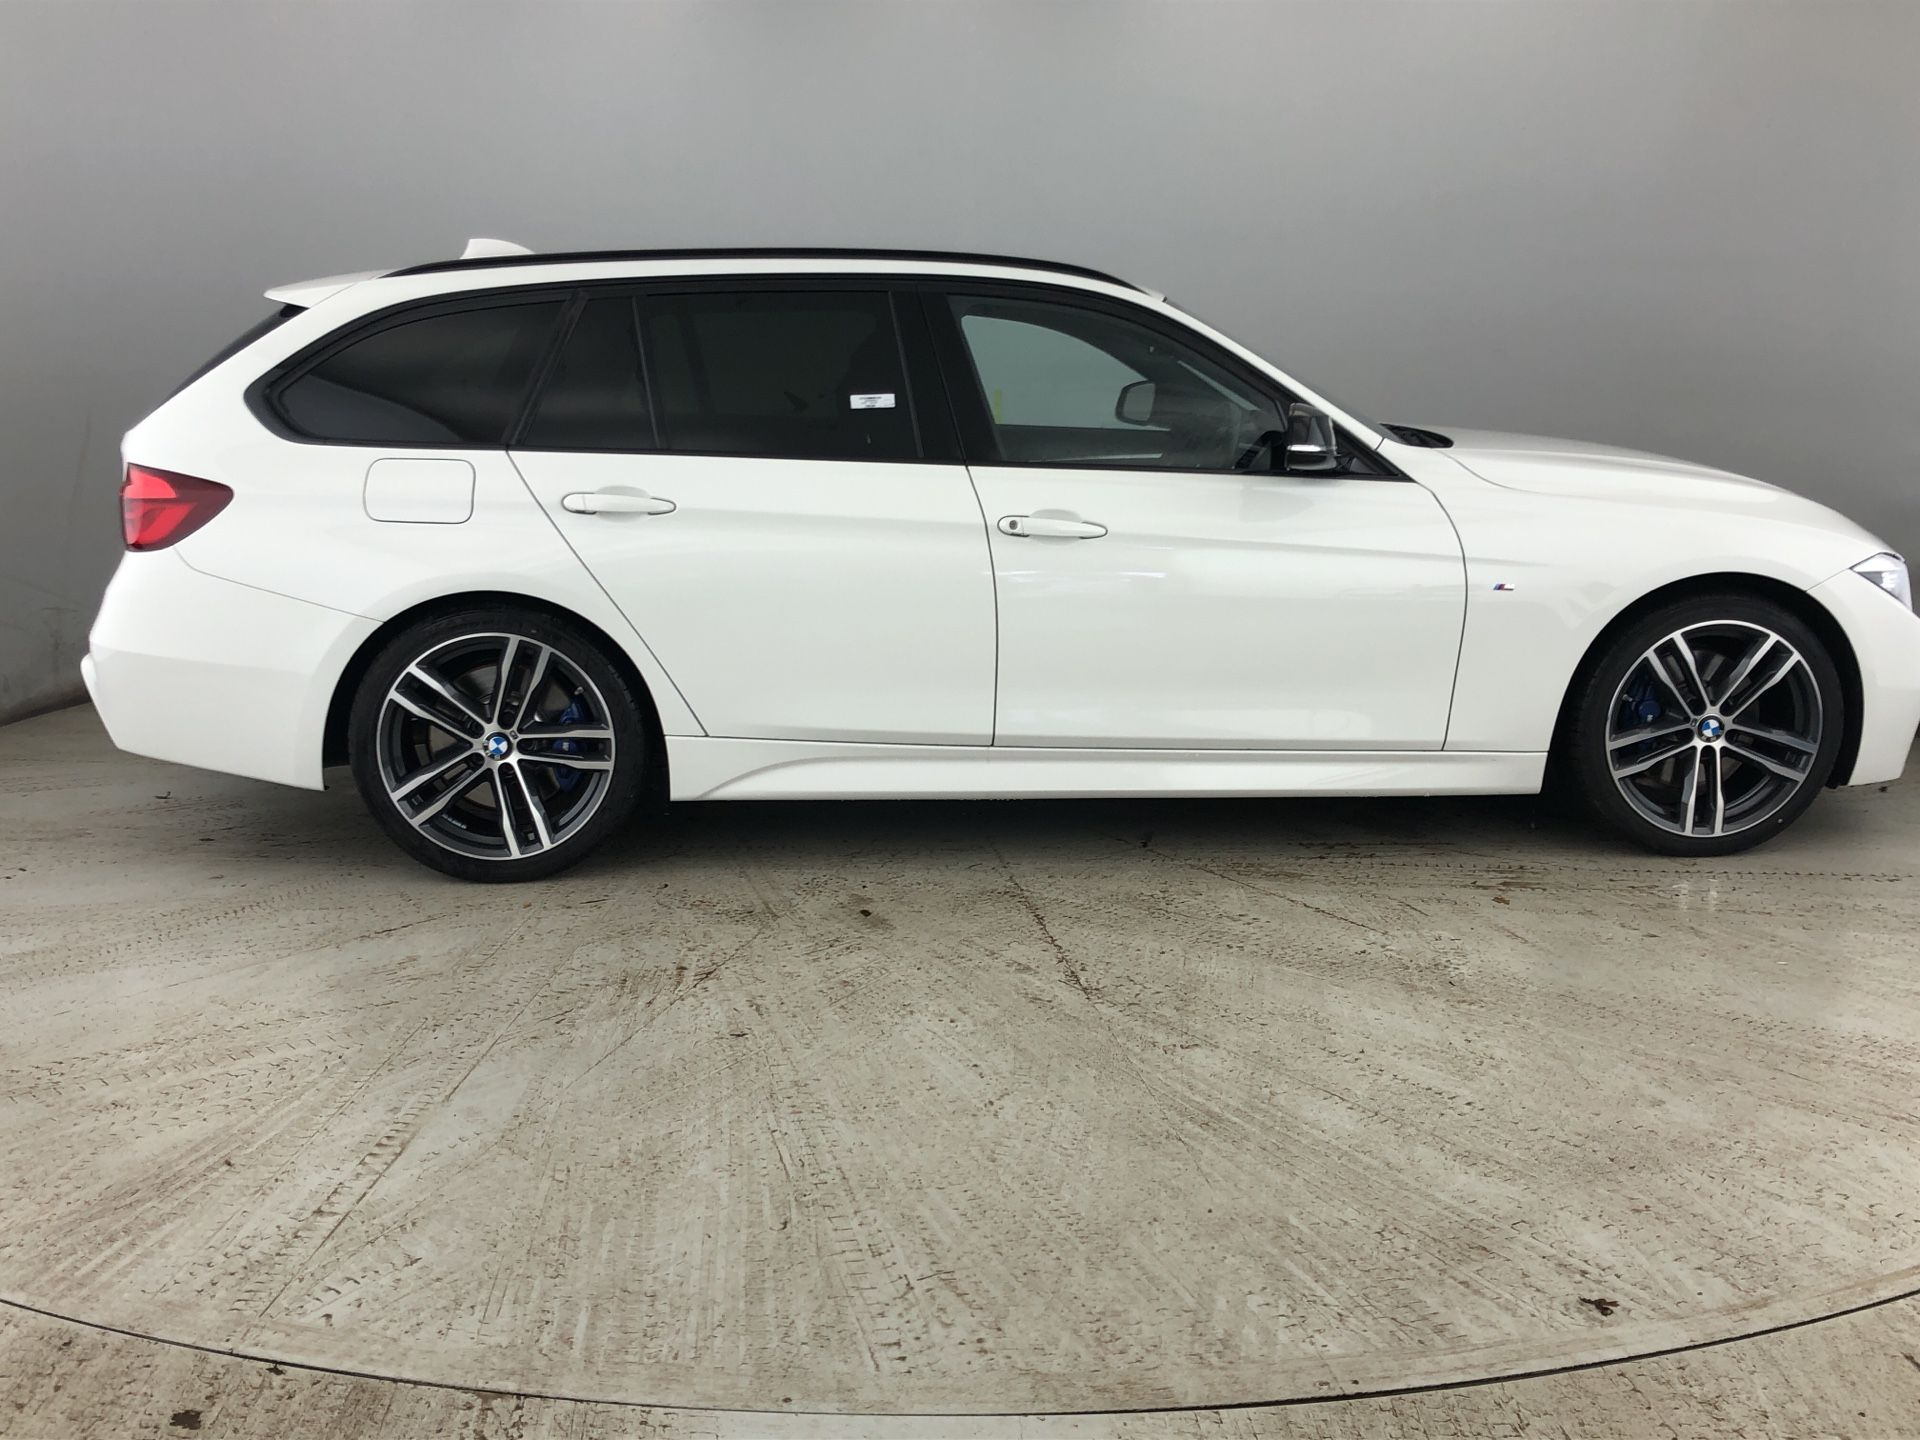 Image 3 - BMW 320d M Sport Shadow Edition Touring (YE19FXL)